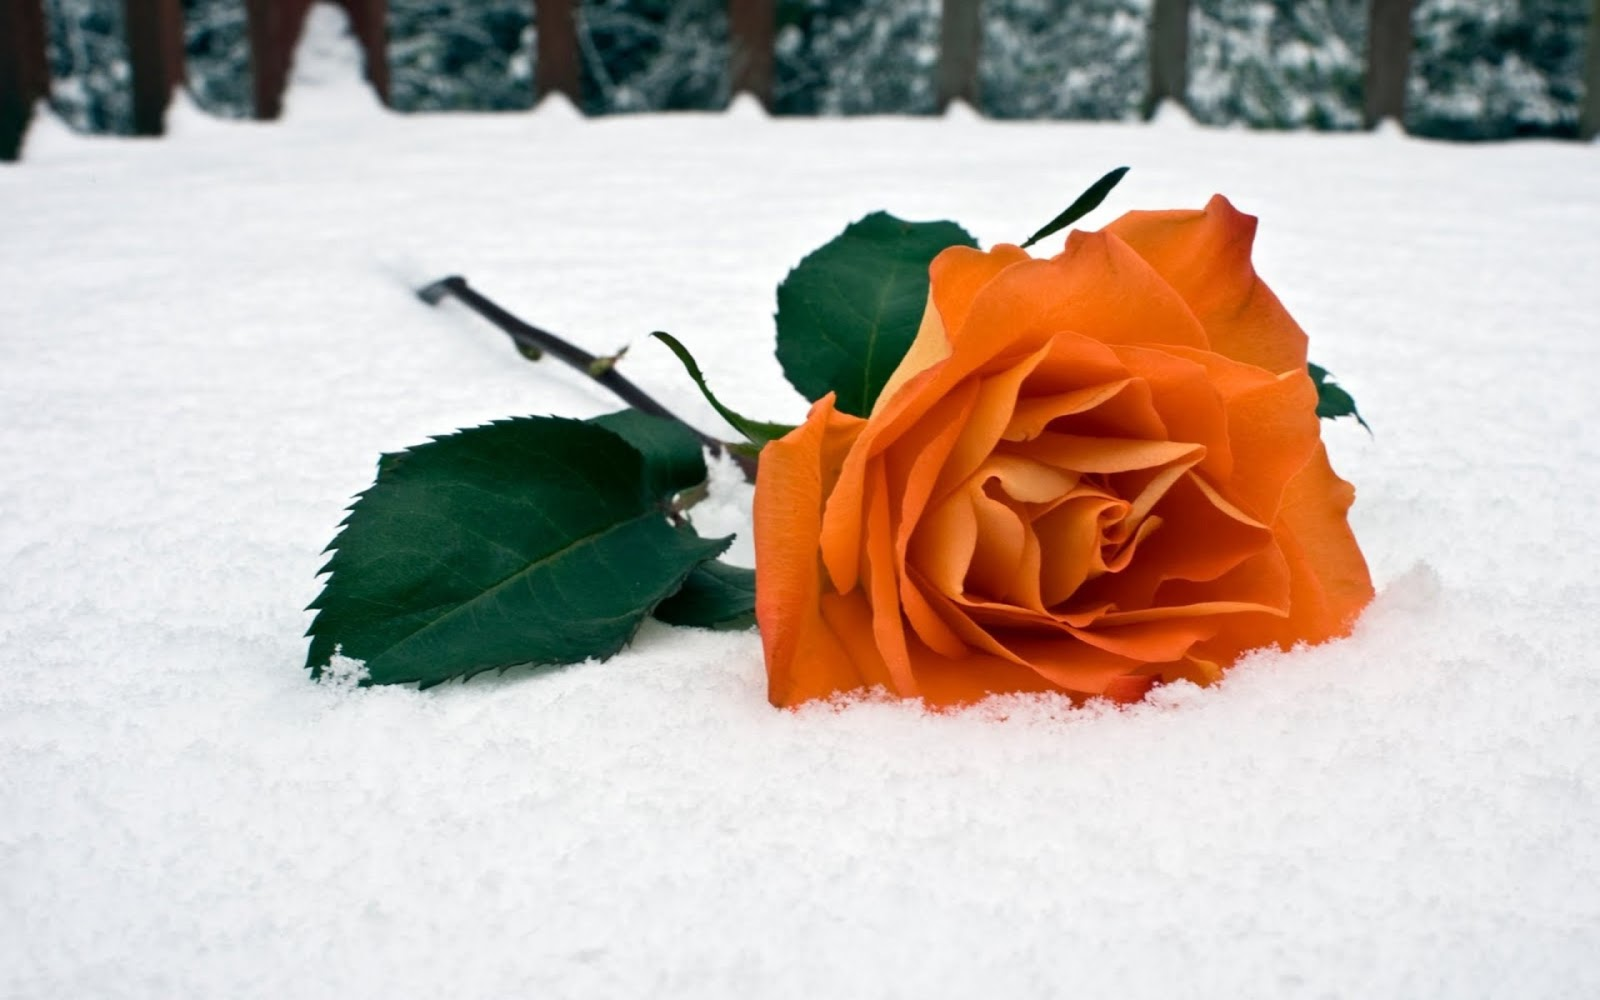 Orange Rose on the Snow